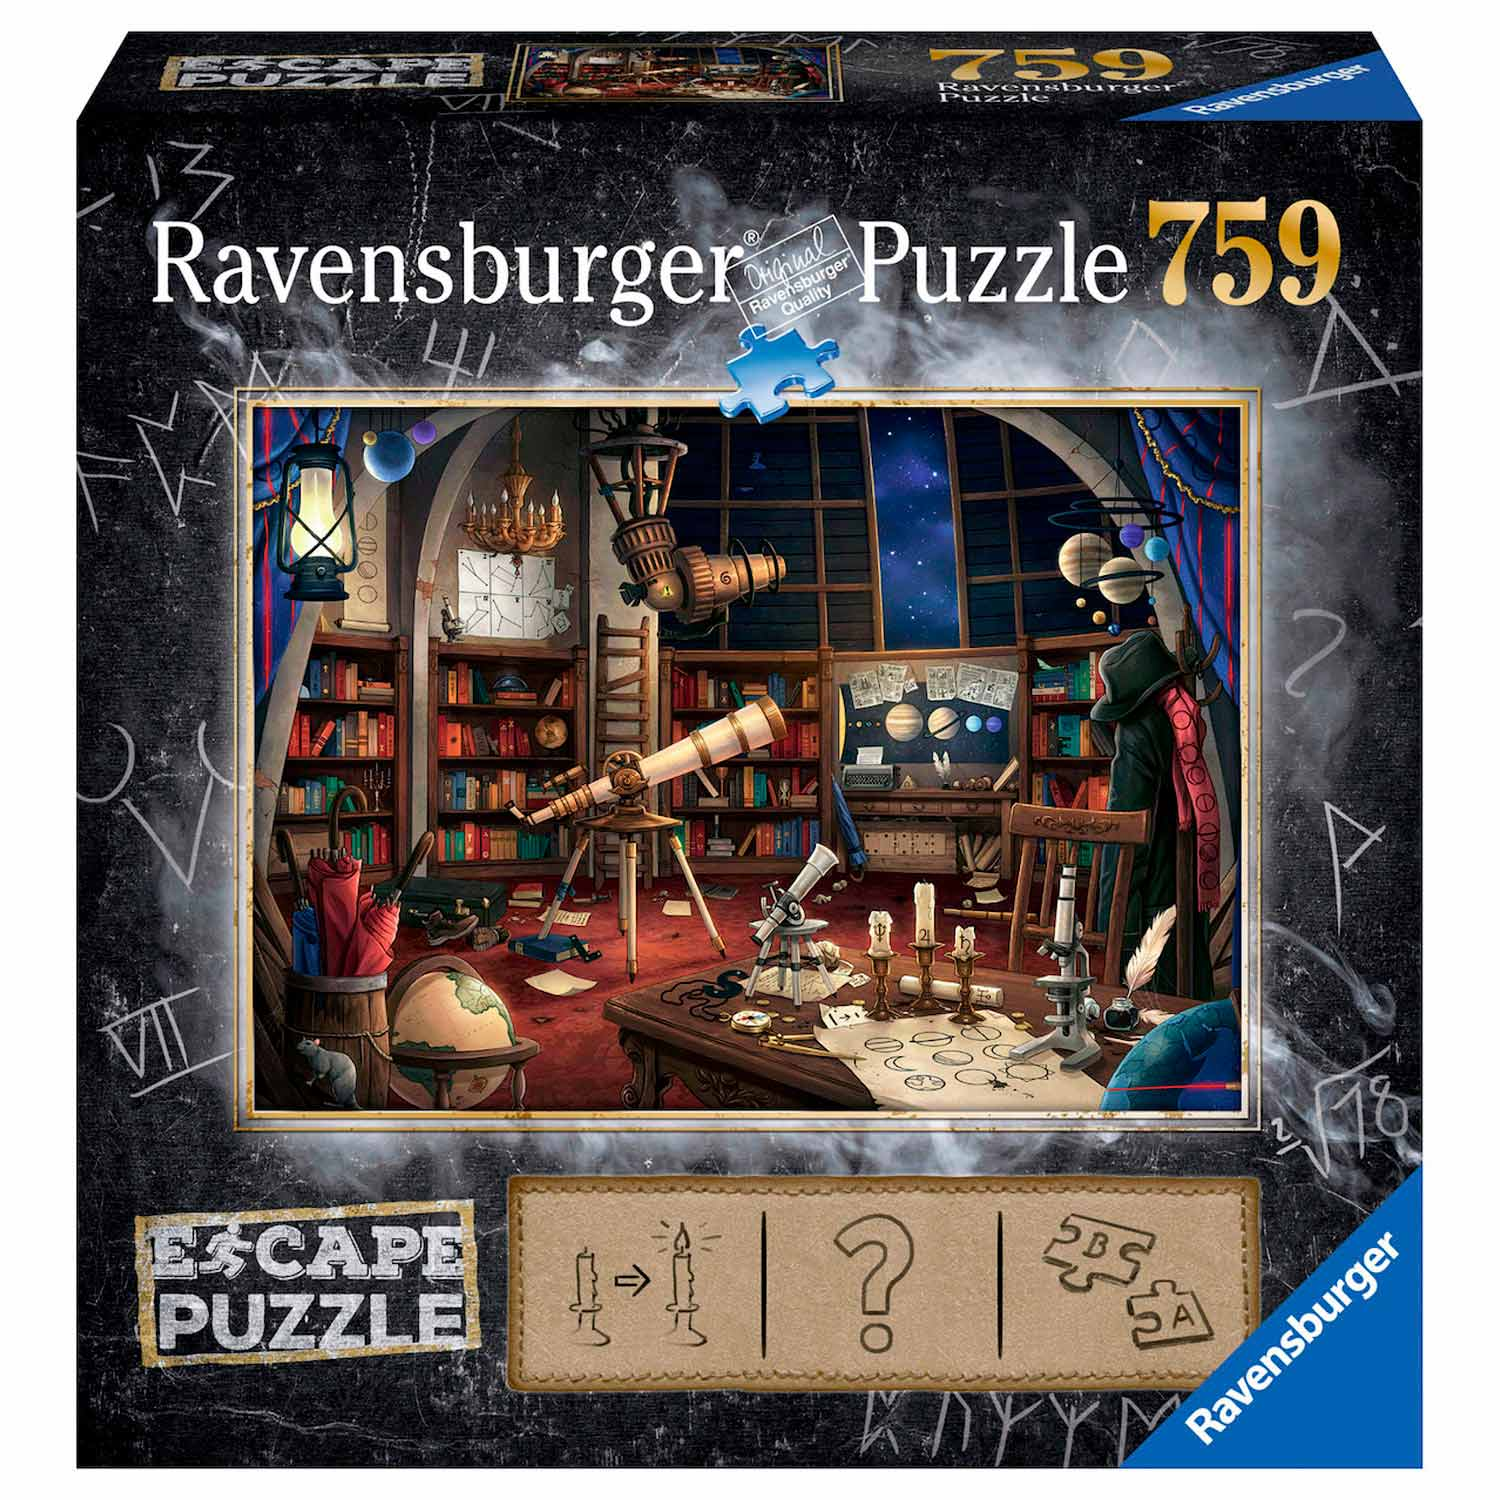 Ravensburger Escape Room Puzzel - De Sterrenwacht, 759st.